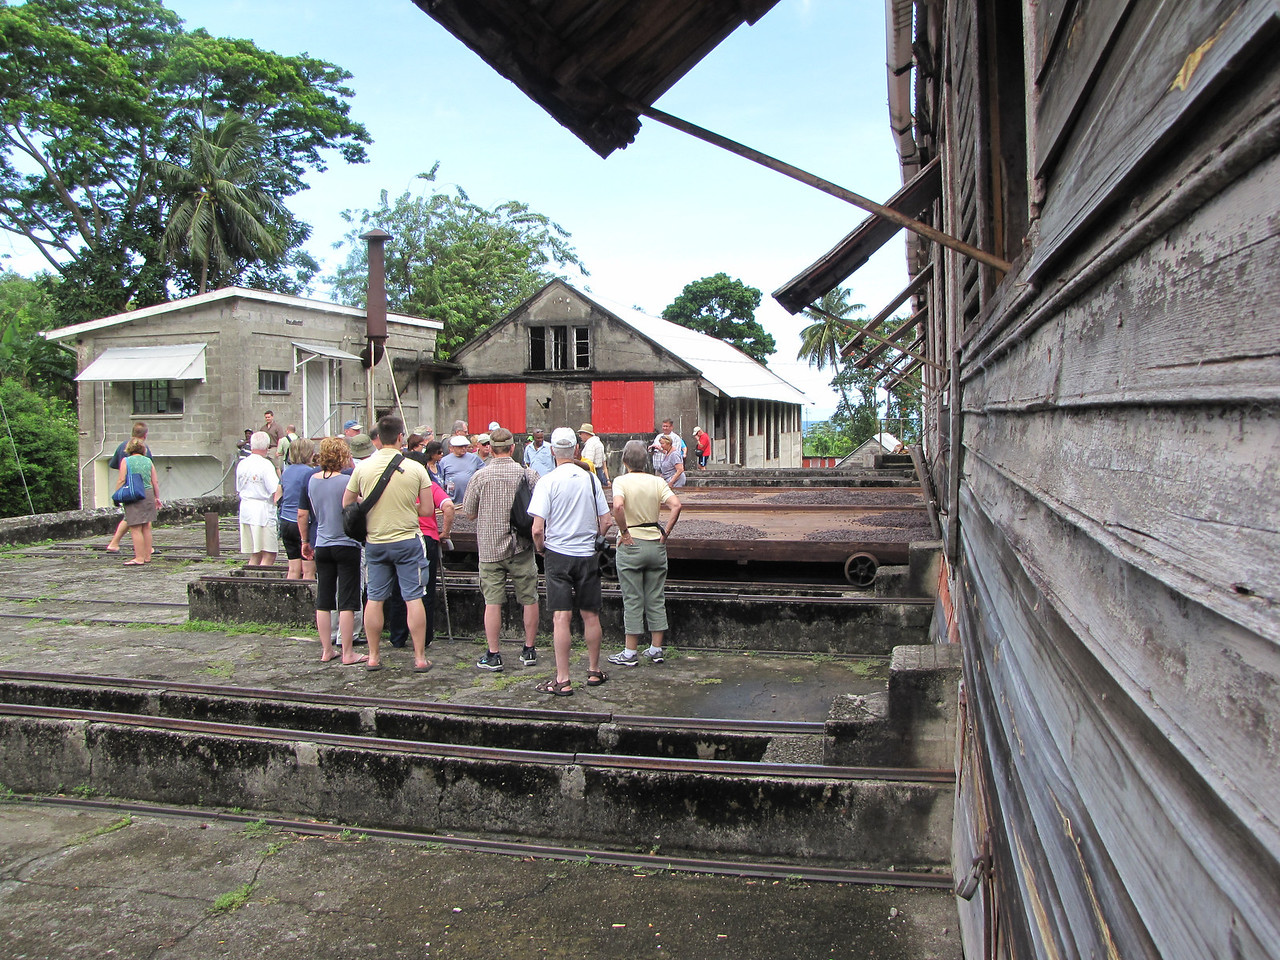 Second stop is at a cocoa processing facility on the Dougaldston Spice Estate.